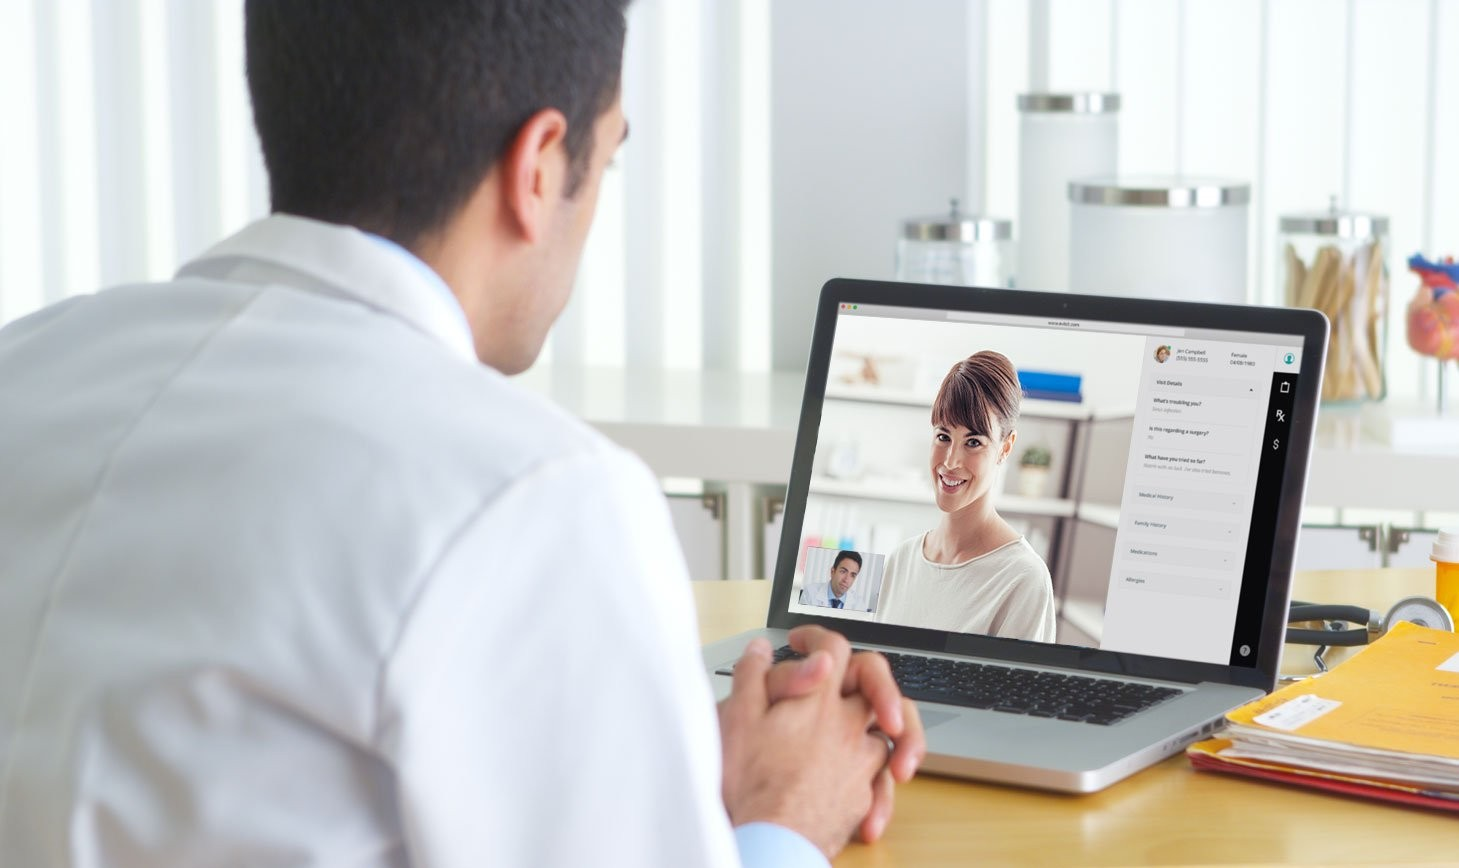 Doctor is having a video chat with a patient